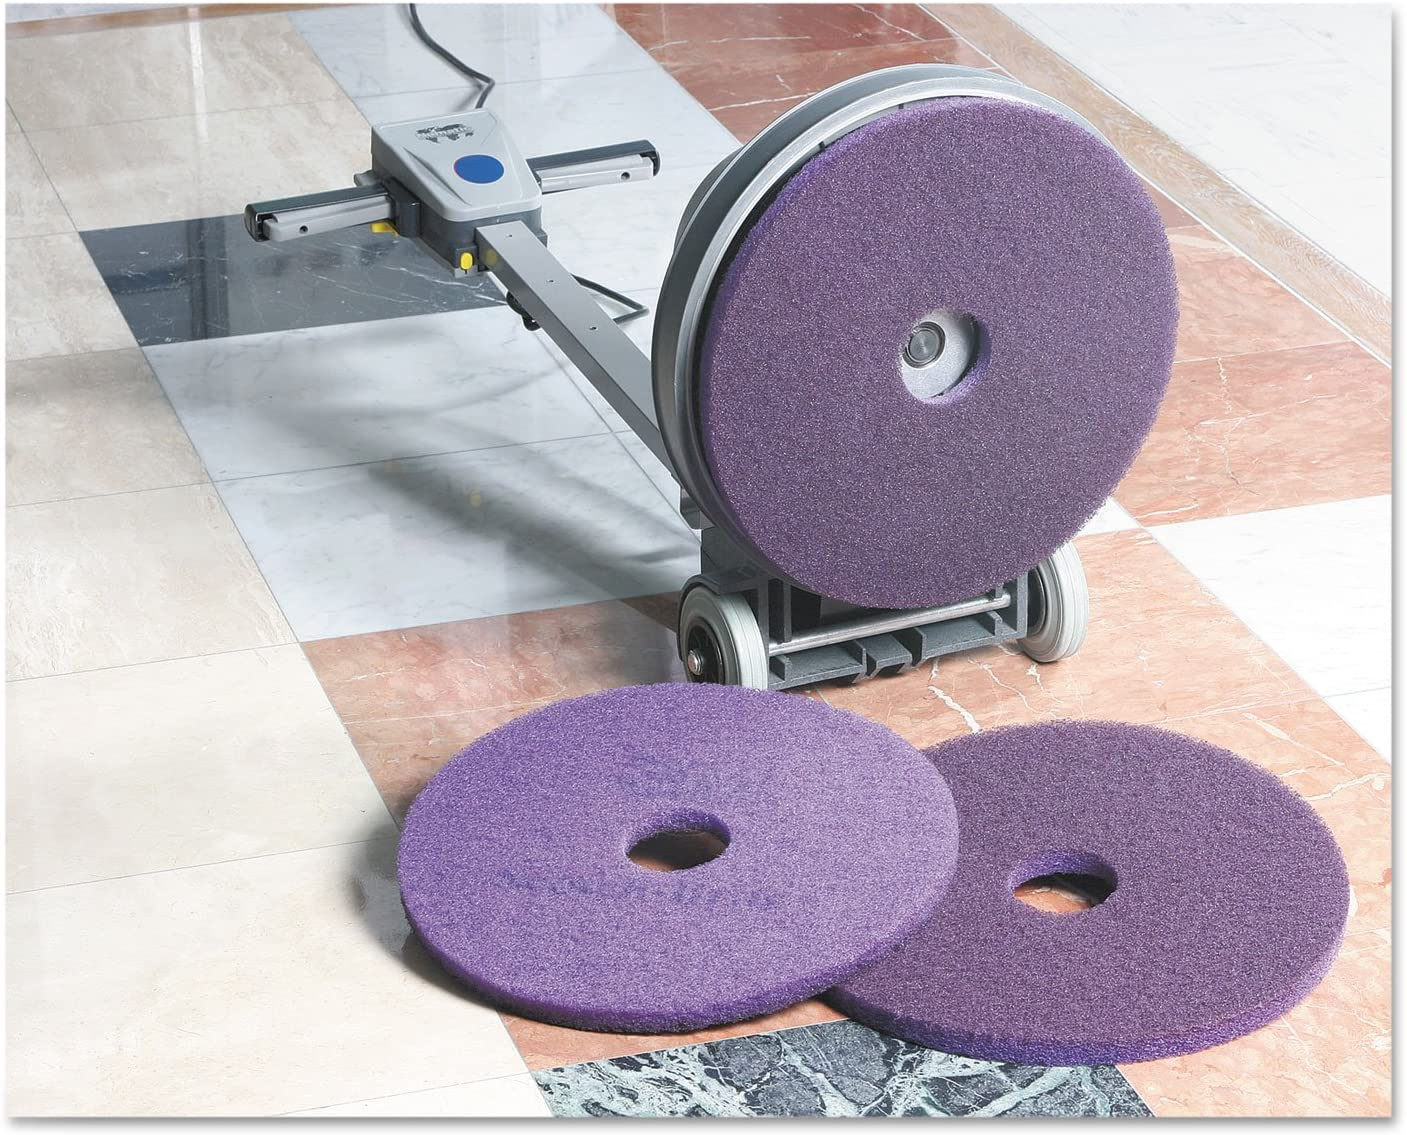 5 Marble Scratches 3M 23894 3M Purple Diamond Marble Floor Polishing Pads